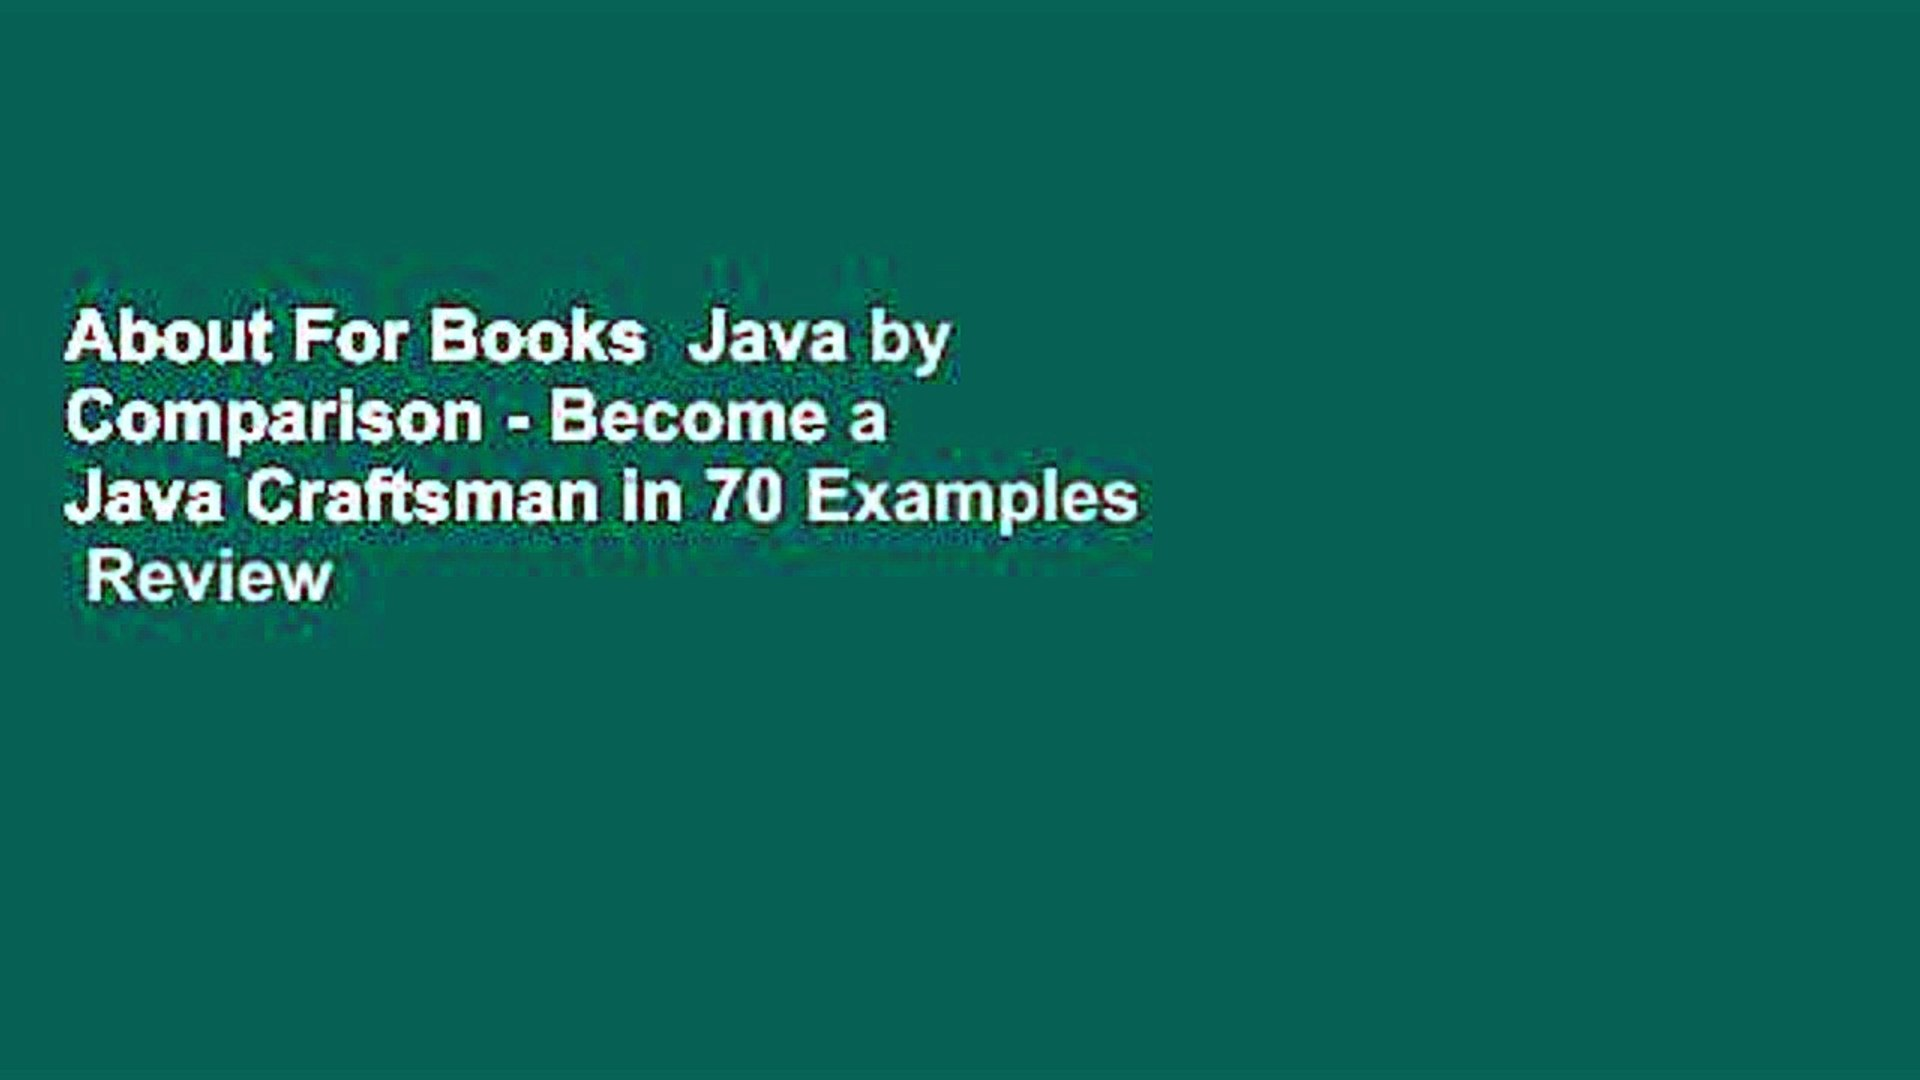 About For Books  Java by Comparison - Become a Java Craftsman in 70 Examples  Review